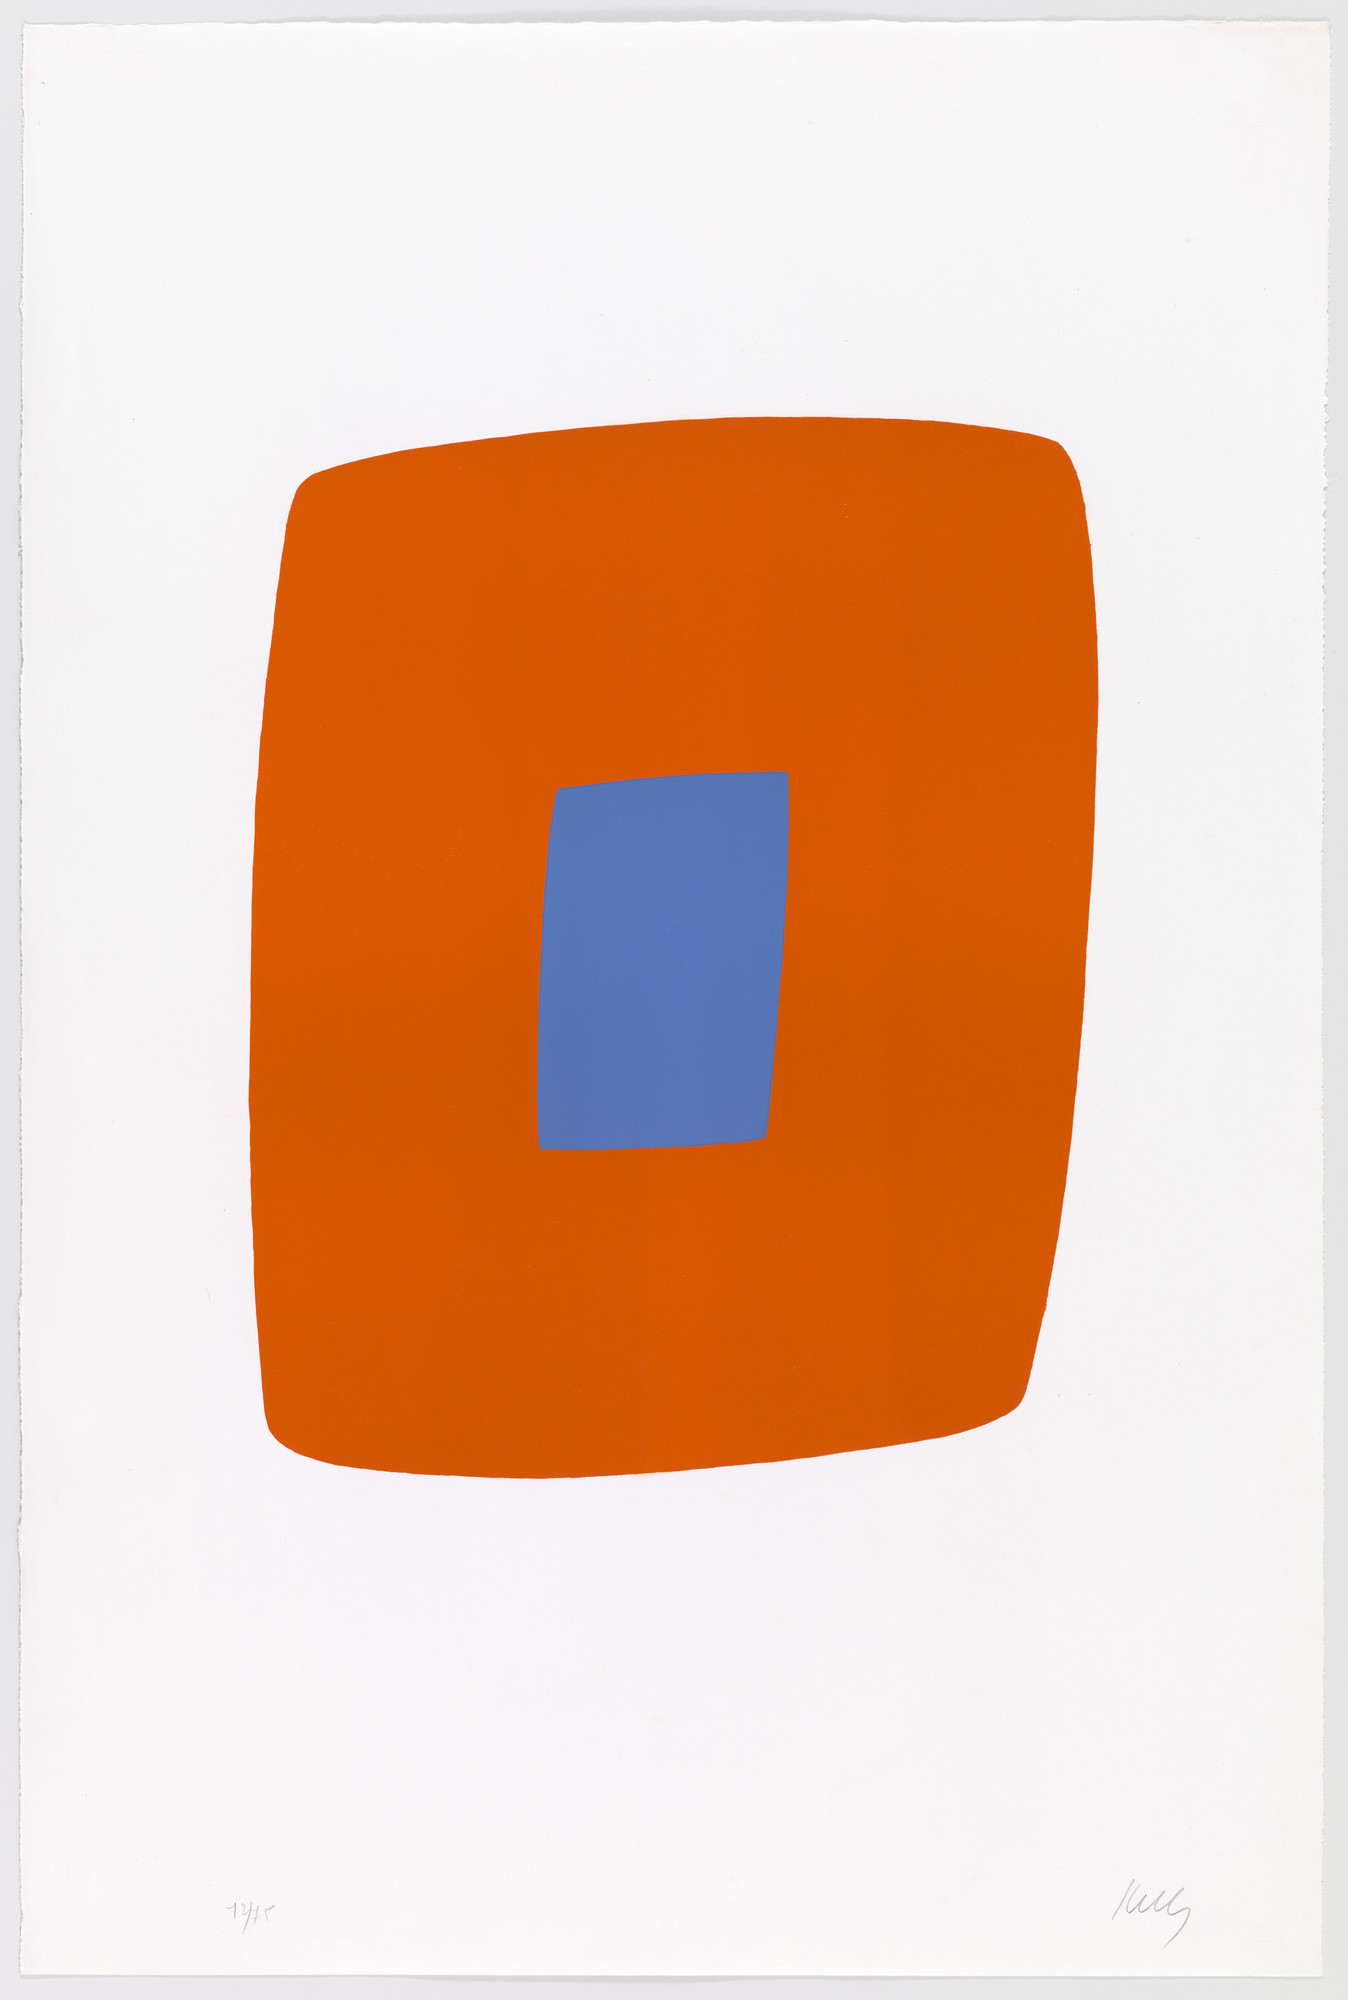 Ellsworth Kelly. Orange with Blue (Orange avec bleu) from Suite of Twenty-Seven Color Lithographs. 1964–65